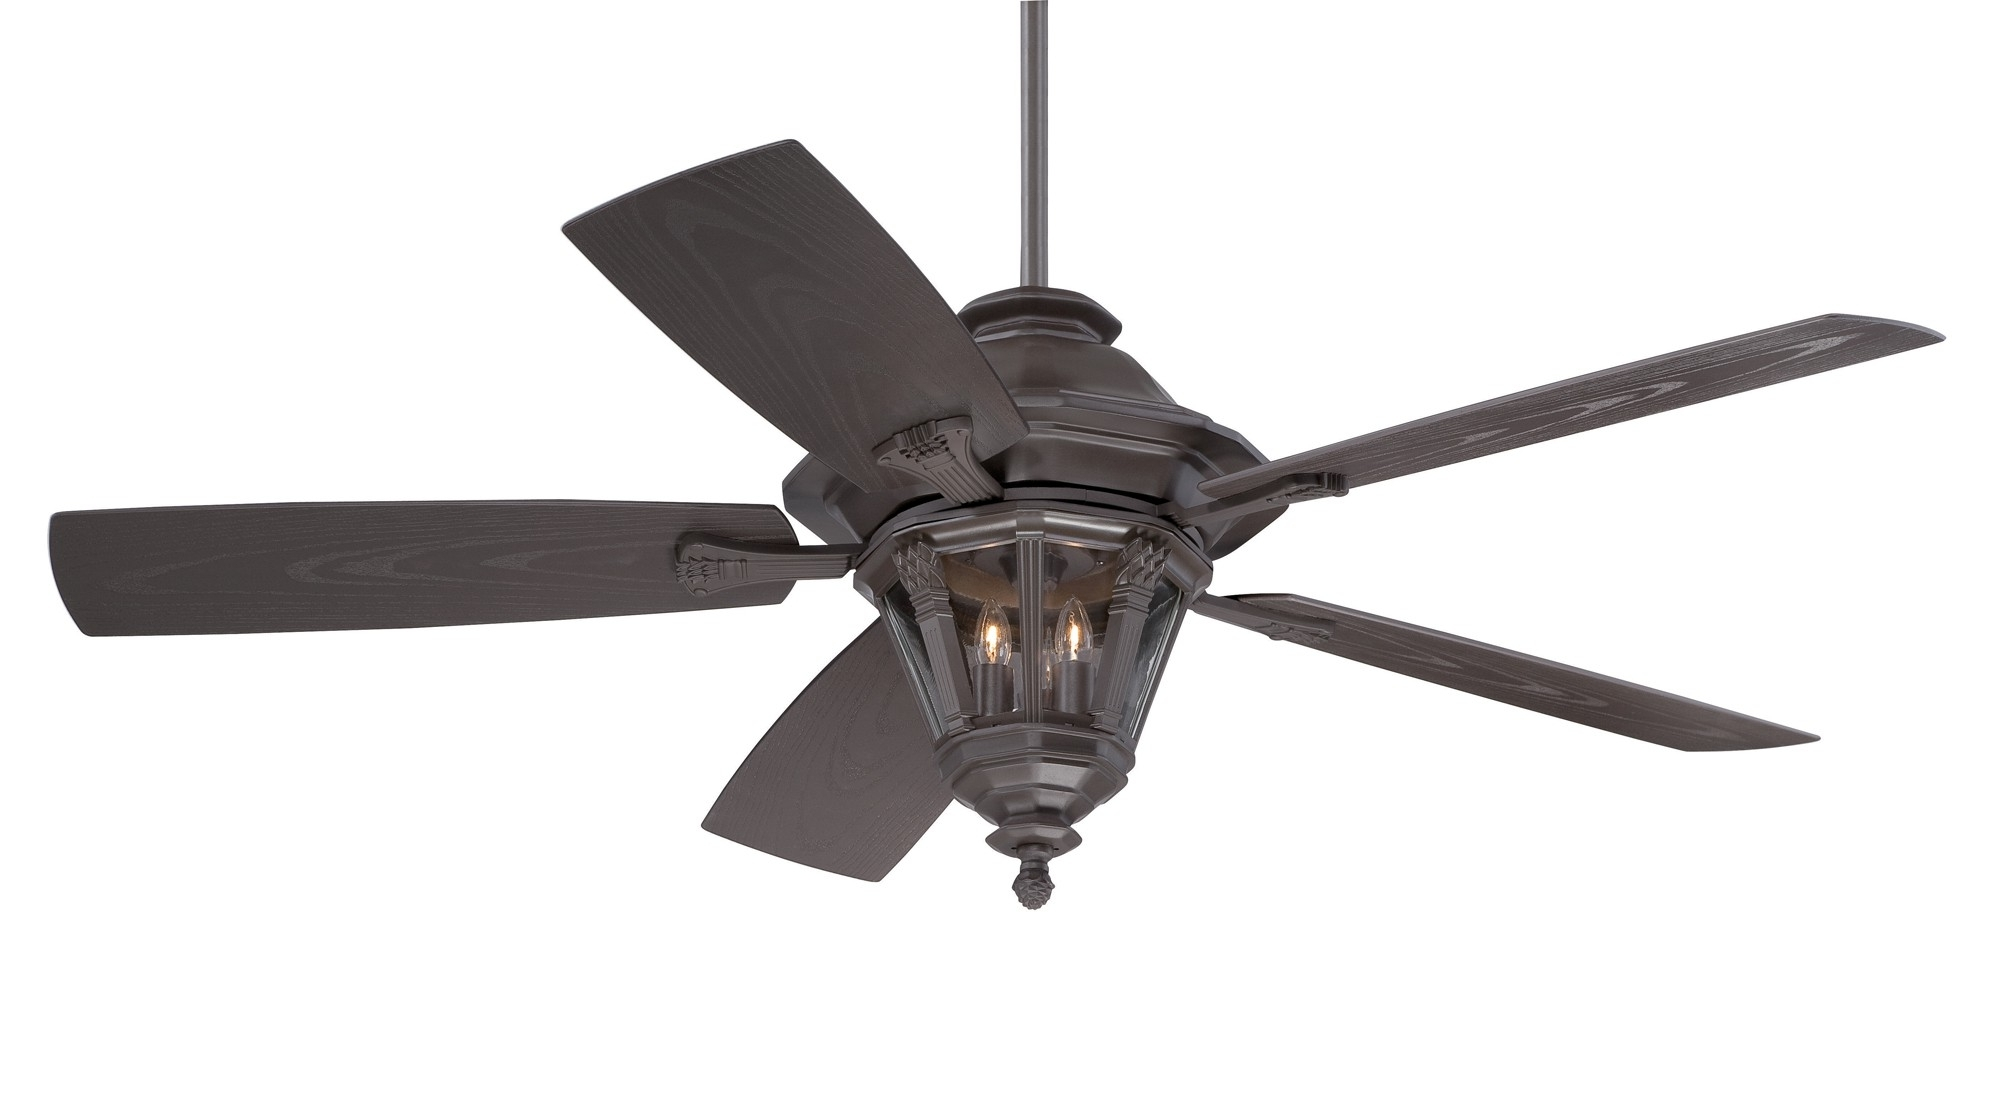 Top 10 Unique Outdoor Ceiling Fans 2018 Warisan Lighting, Best Regarding Fashionable Large Outdoor Ceiling Fans With Lights (View 20 of 20)